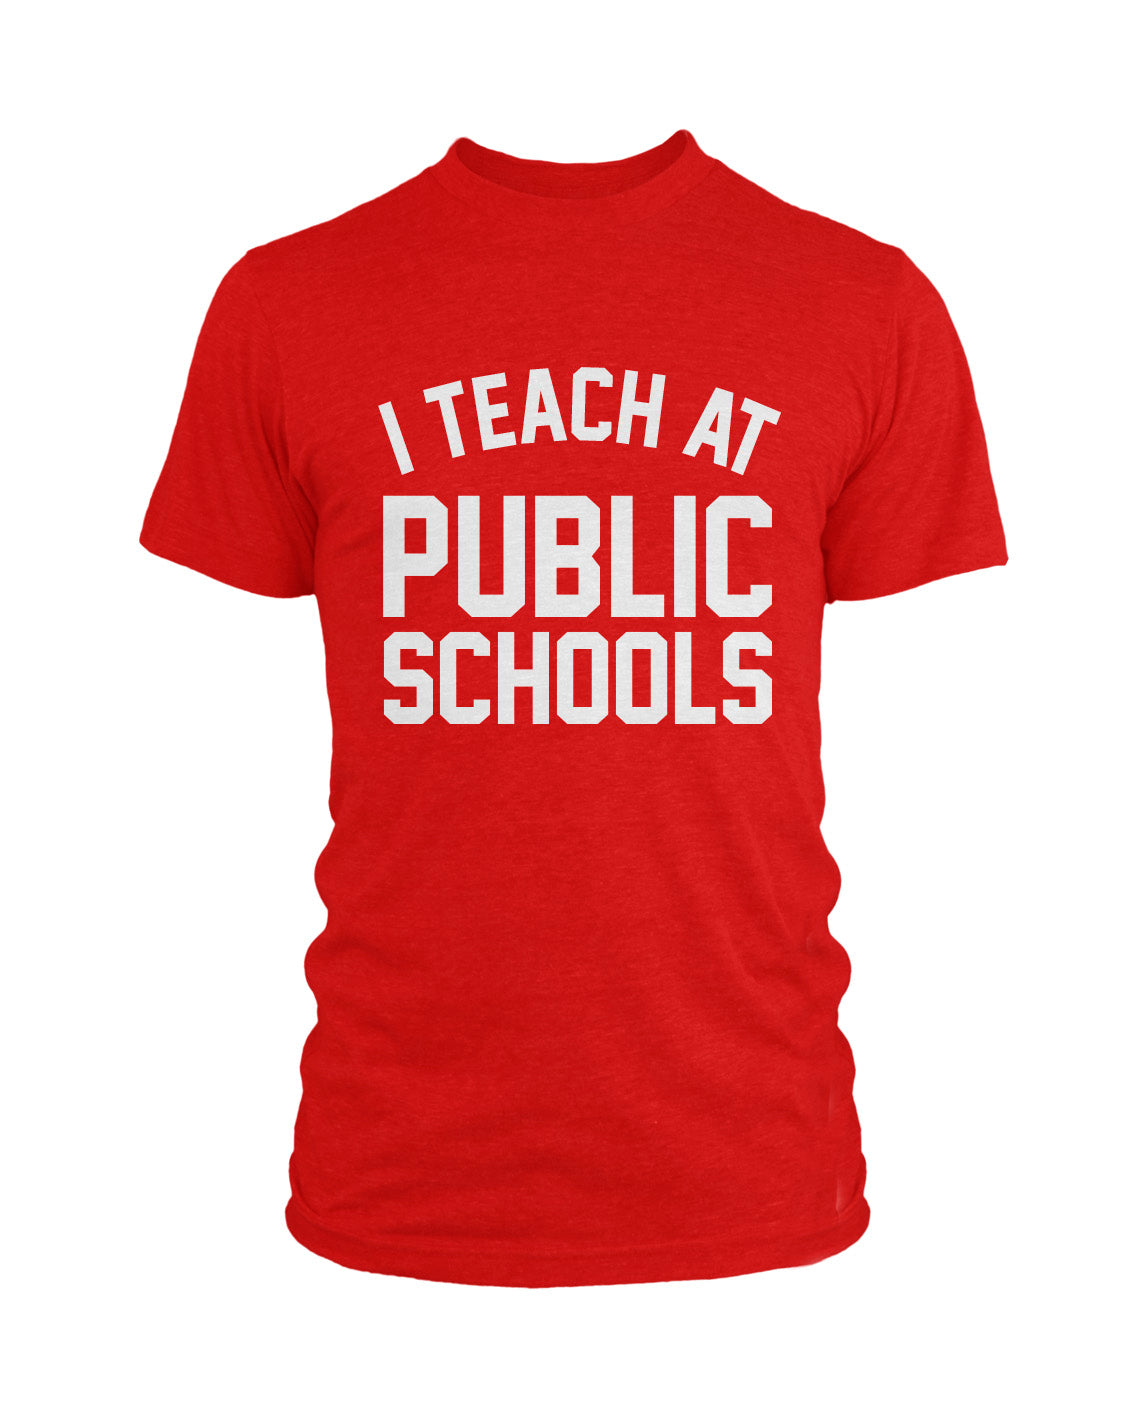 I Teach at Public Schools | Red Tee - Originalitees